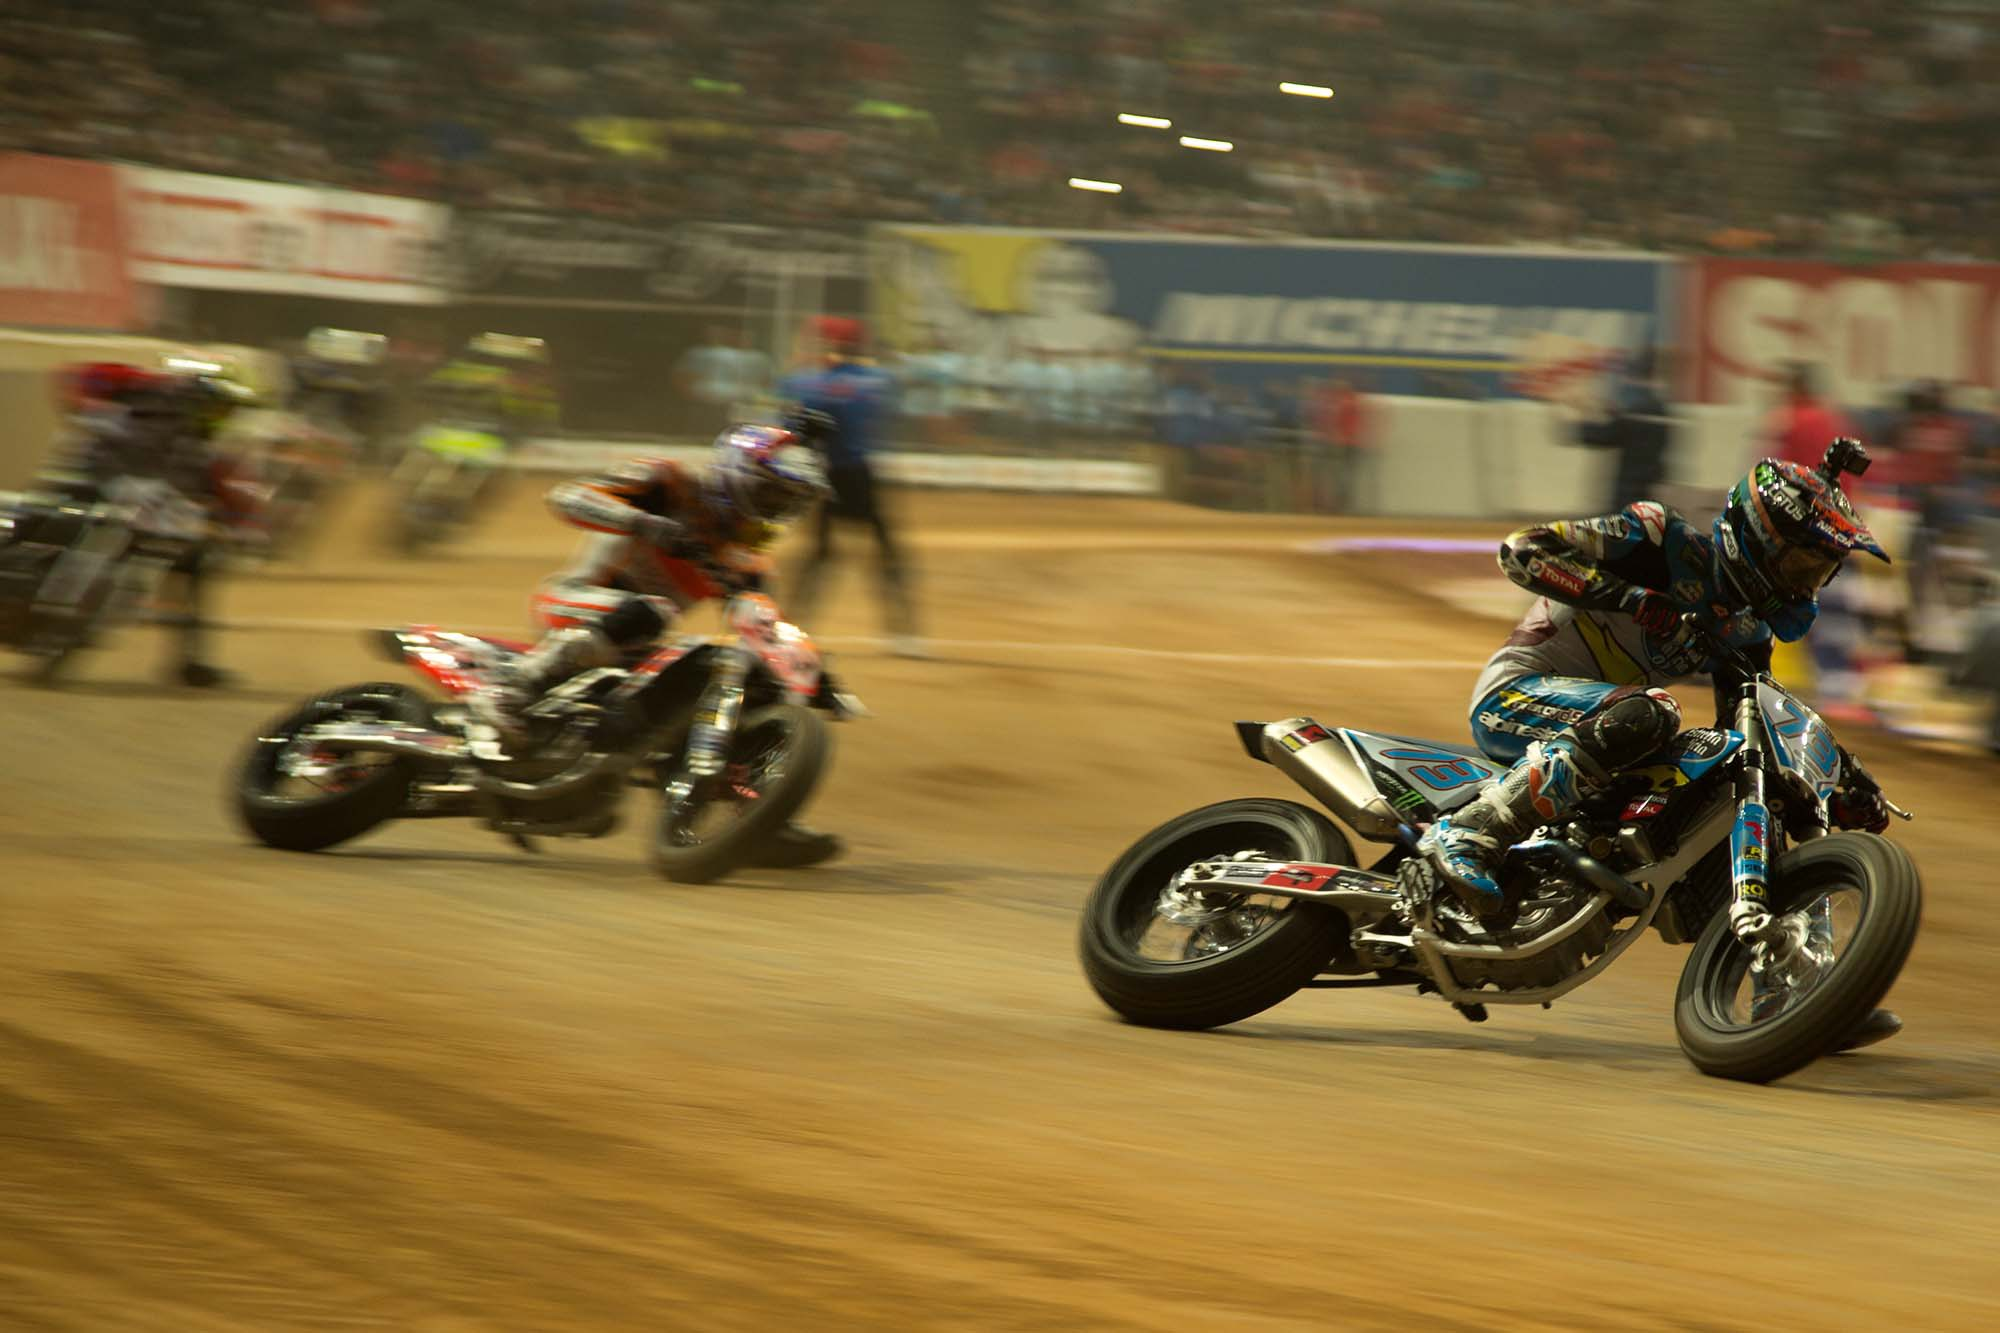 Superprestigio Dirt Track 2015 Superprestigio-2015-Barcelona-Steve-English-08